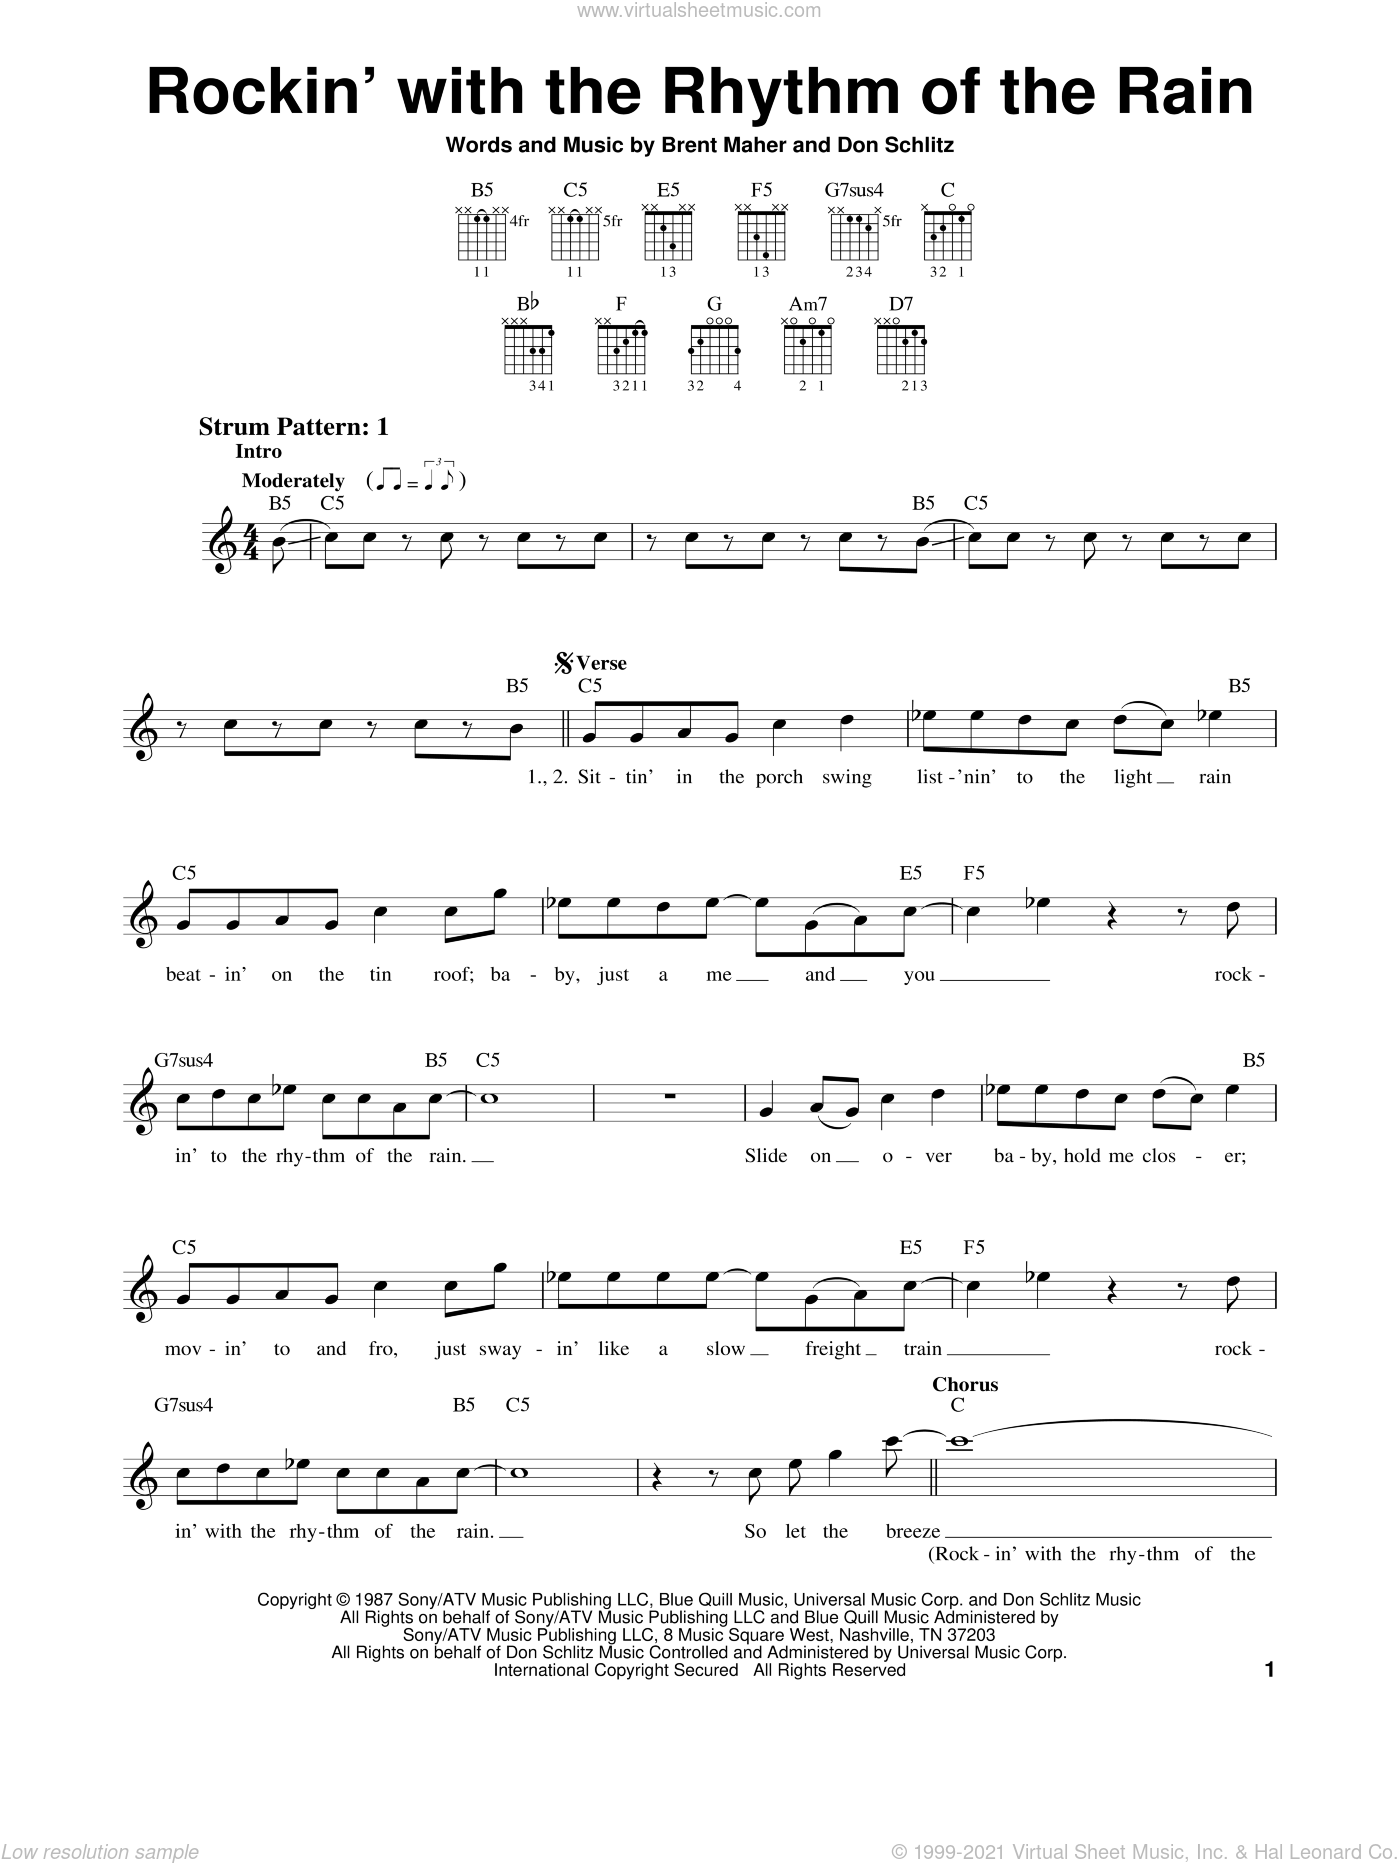 Rockin' With The Rhythm Of The Rain sheet music for guitar solo (chords) by The Judds and Don Schlitz, easy guitar (chords). Score Image Preview.